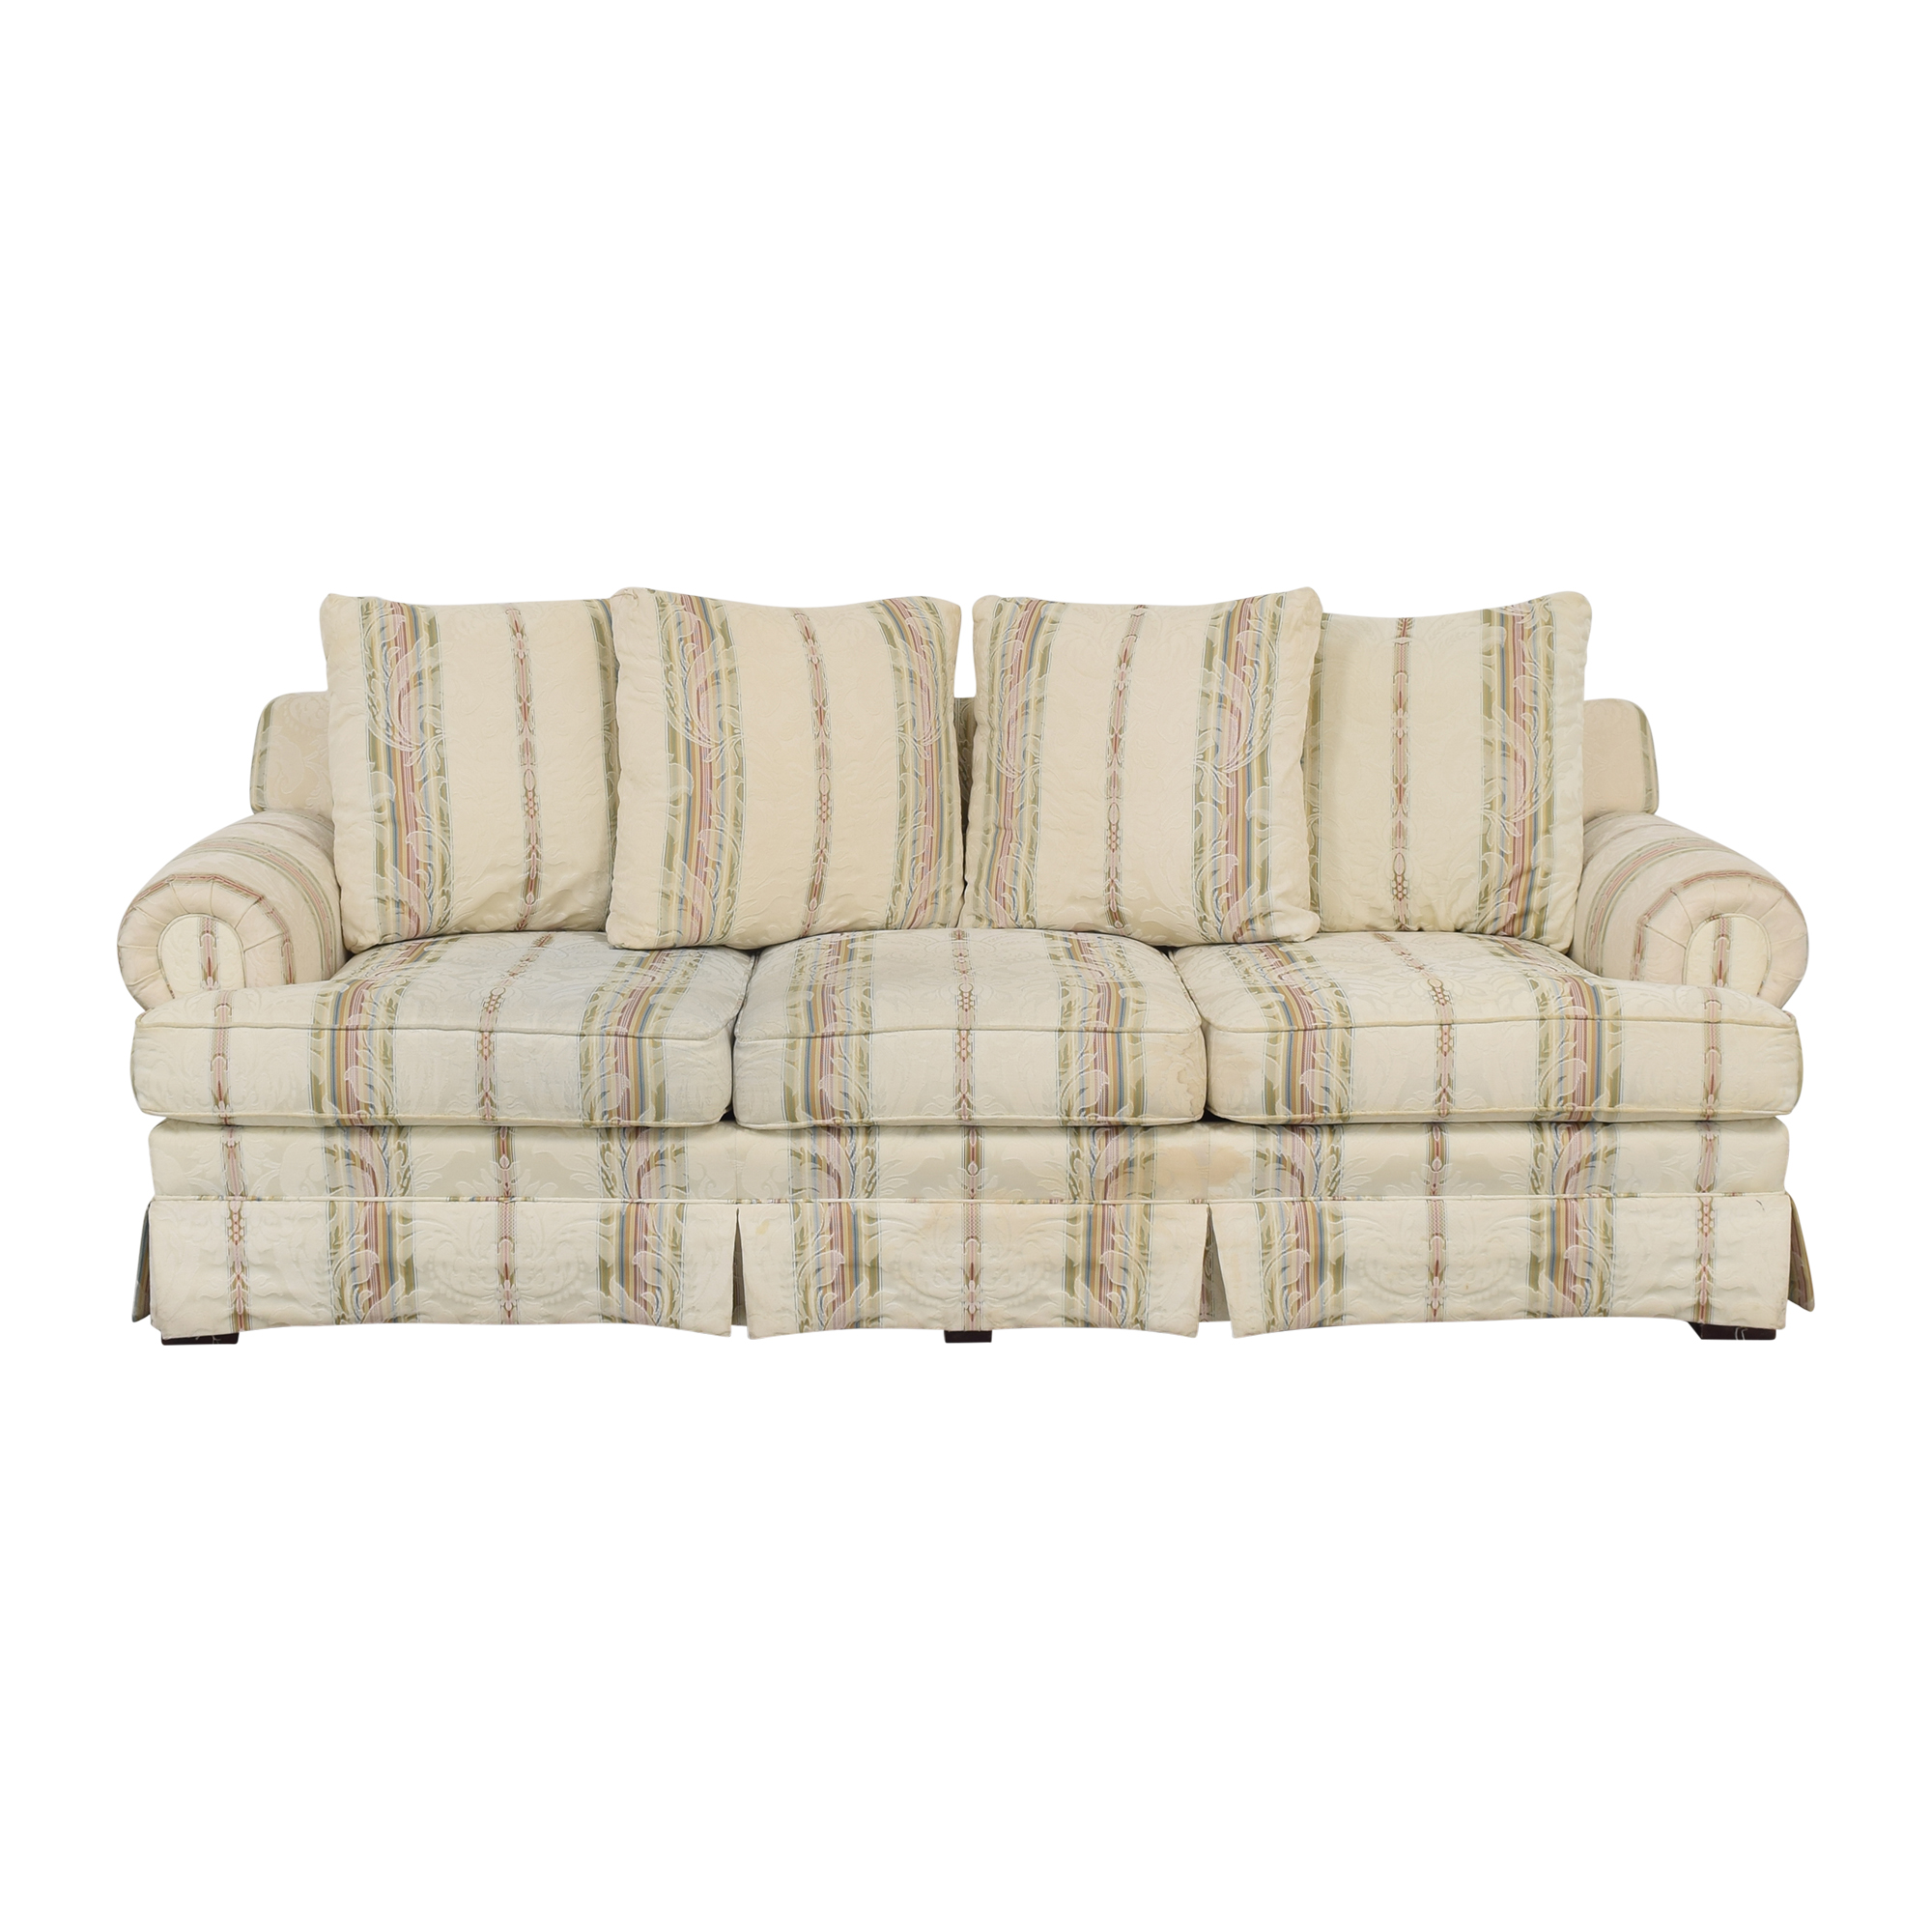 Broyhill Furniture Broyhill Furniture Layered Pillow Sofa